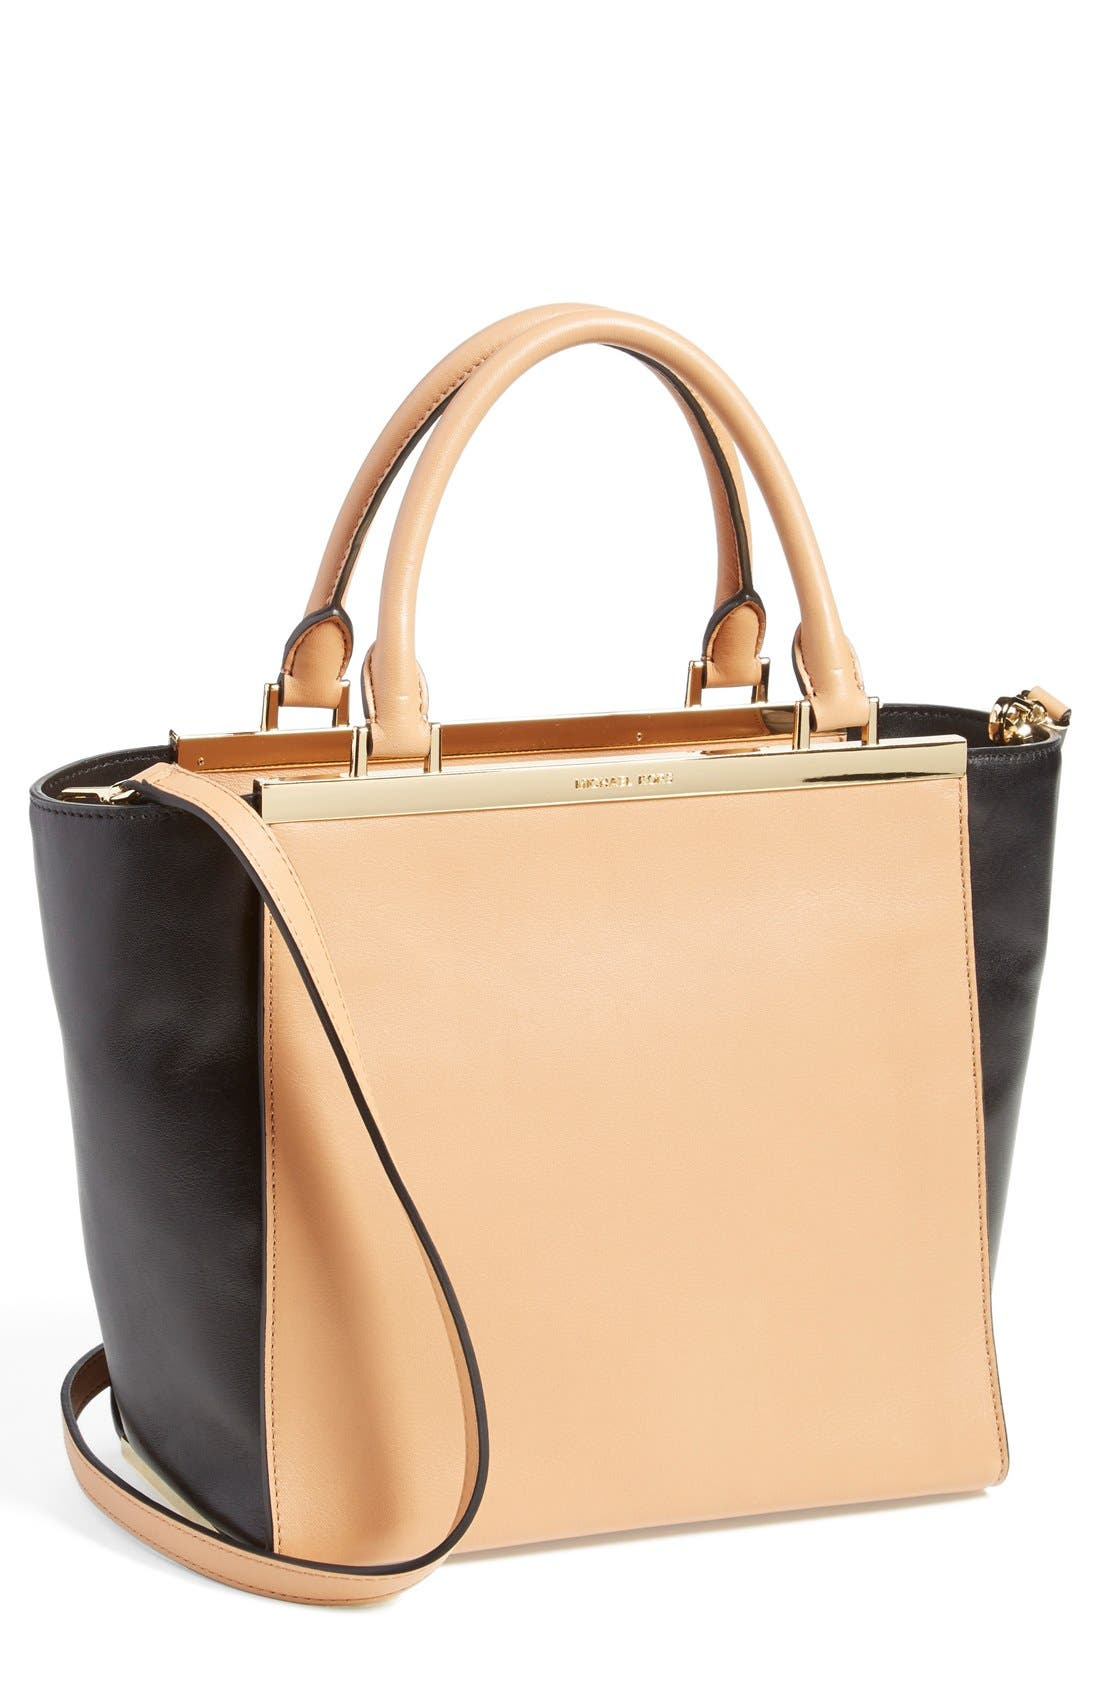 Main Image - MICHAEL Michael Kors 'Lana Medium' Leather Tote